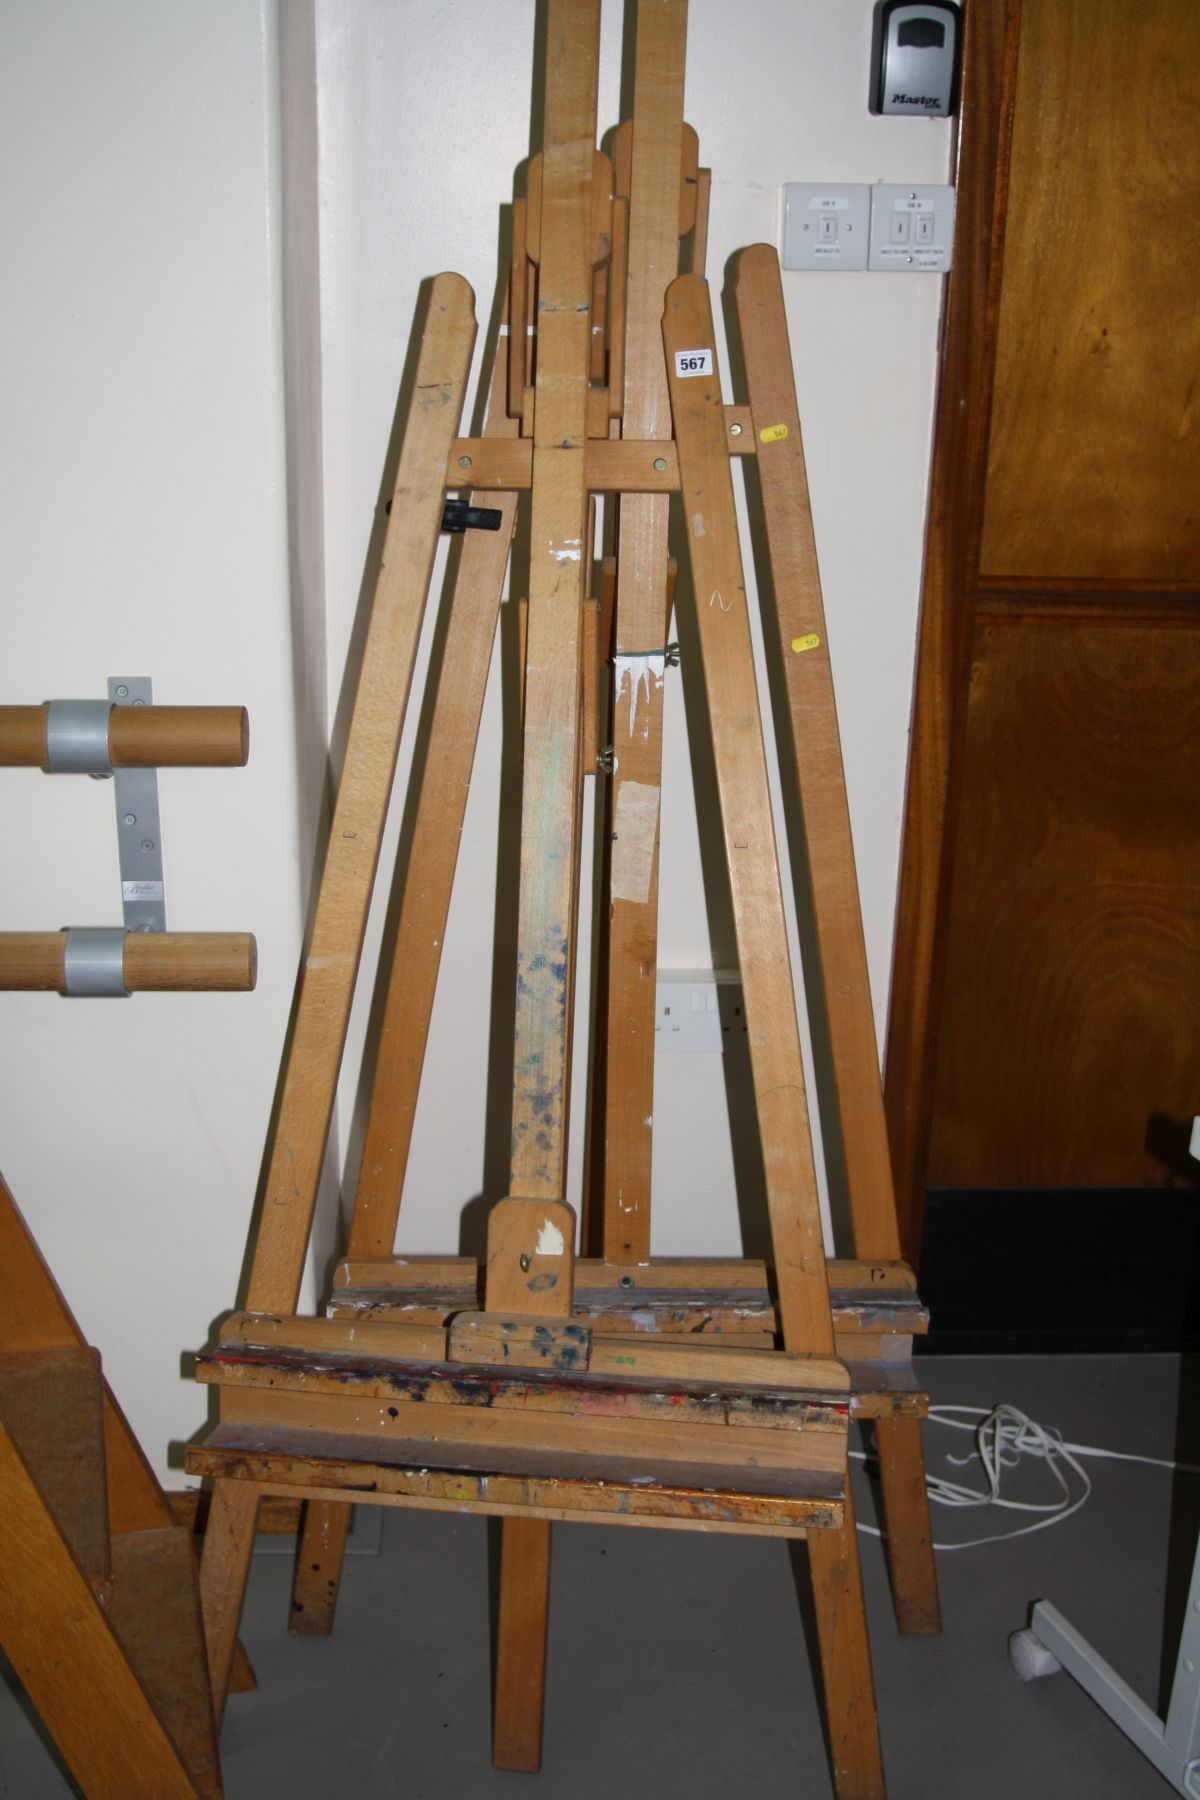 Lot 567 - TWO MODERN ADJUSTABLE ARTISTS EASELS, 185cm high (s.d.)